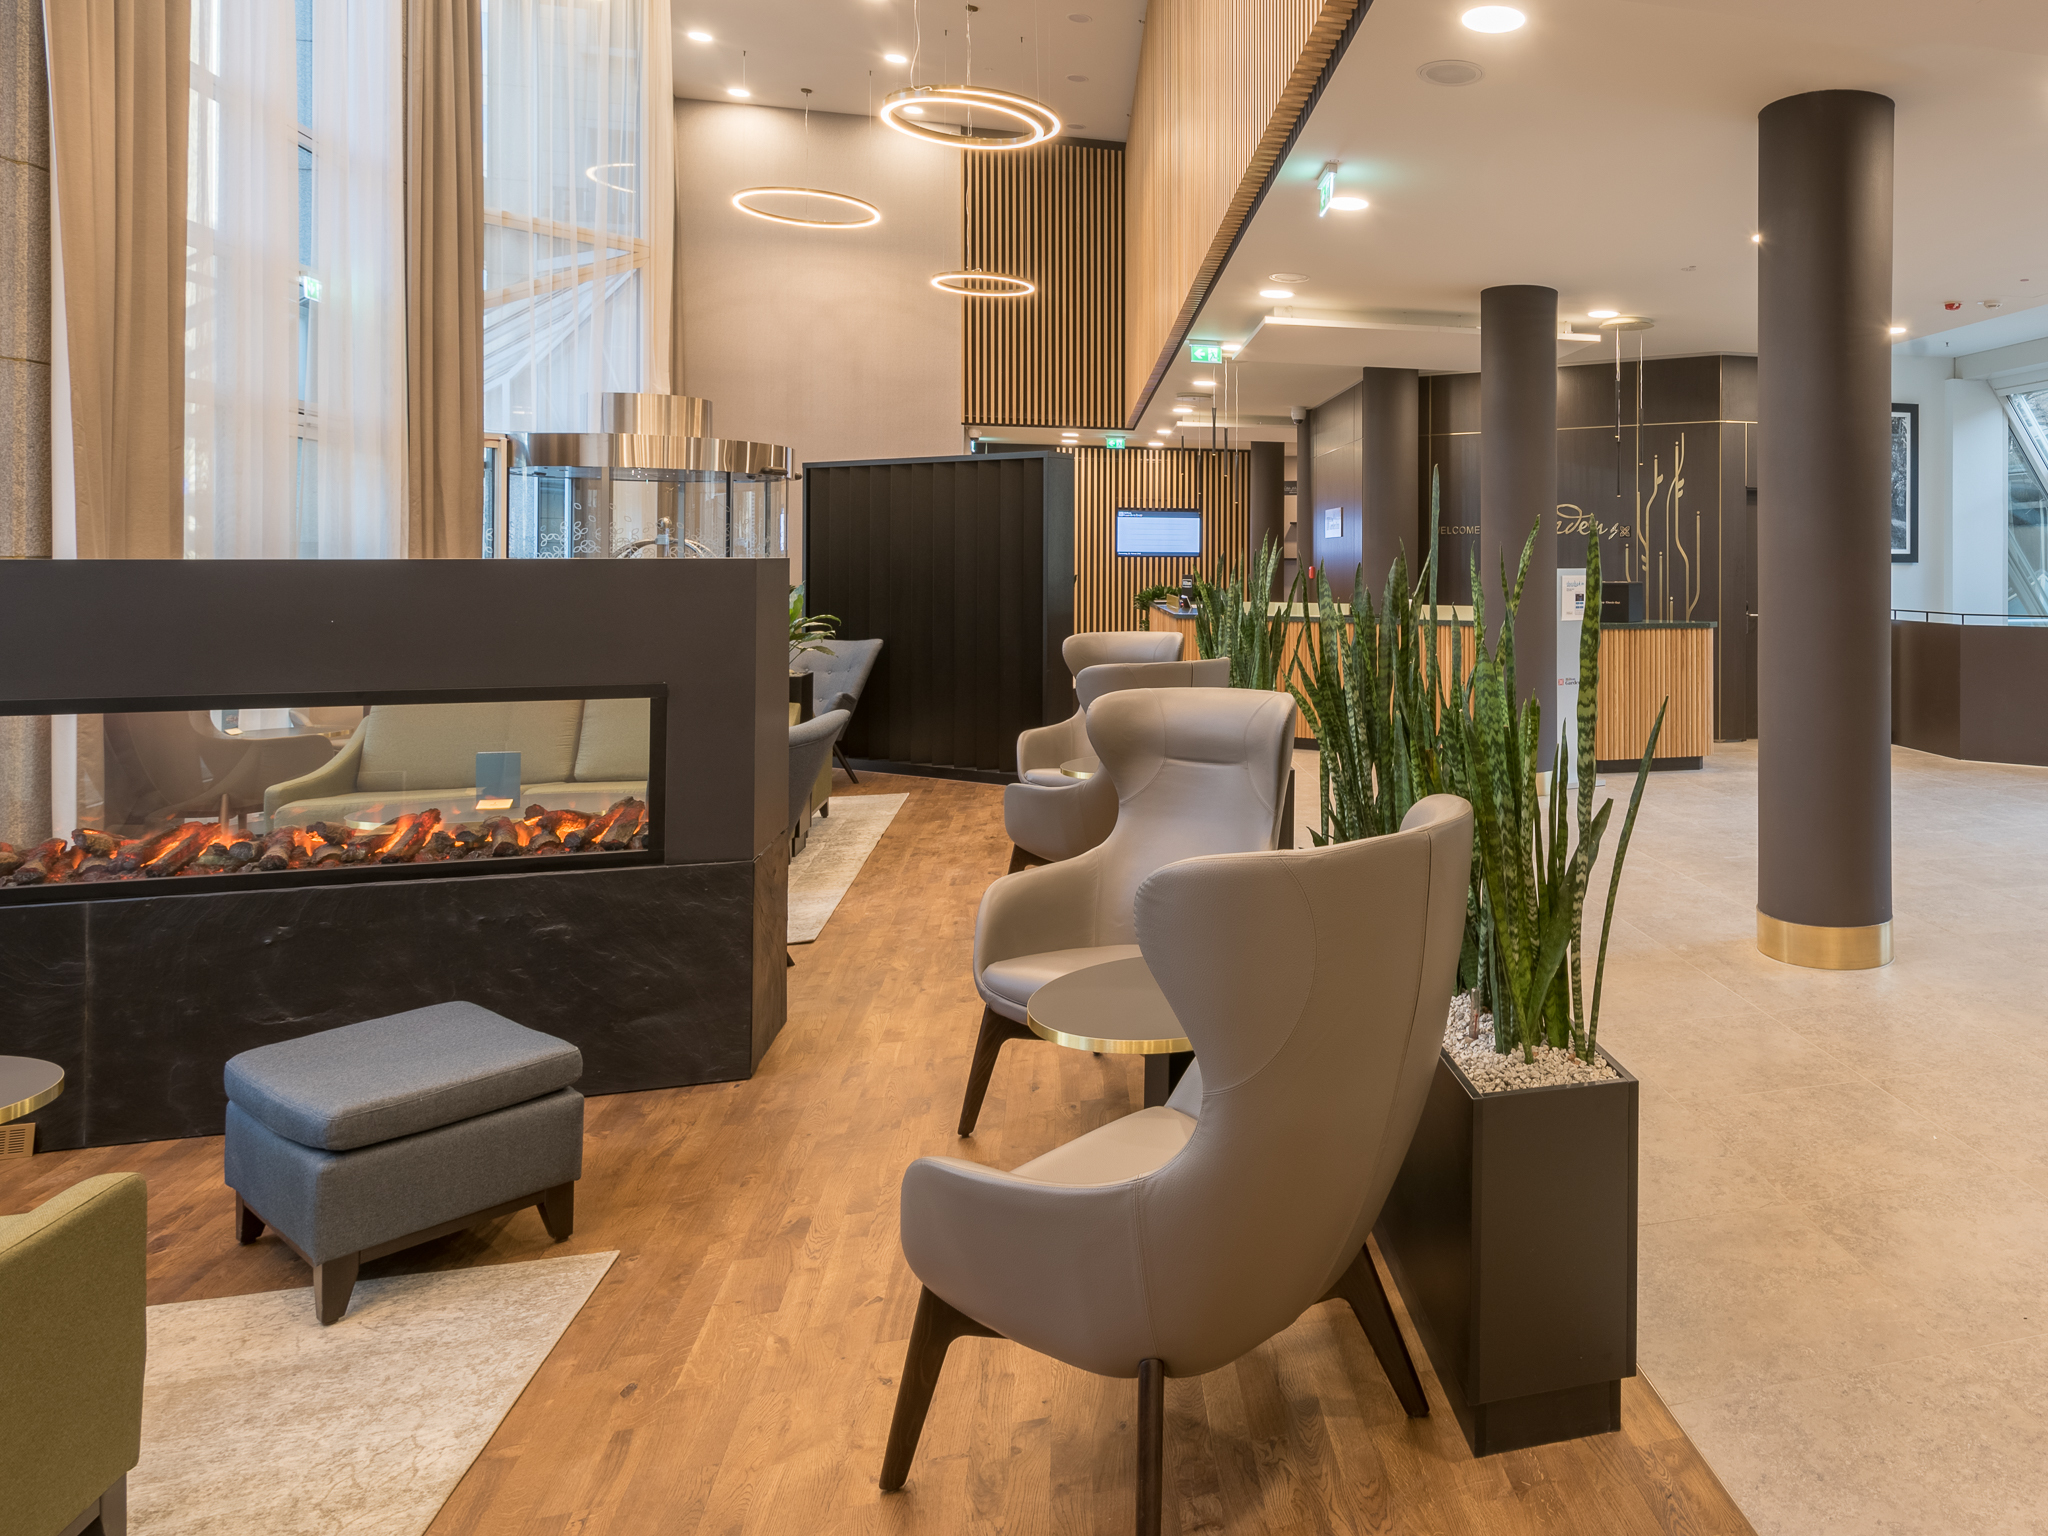 March-ing Right Along: Hilton Garden Inn Continues Rapid Global ...